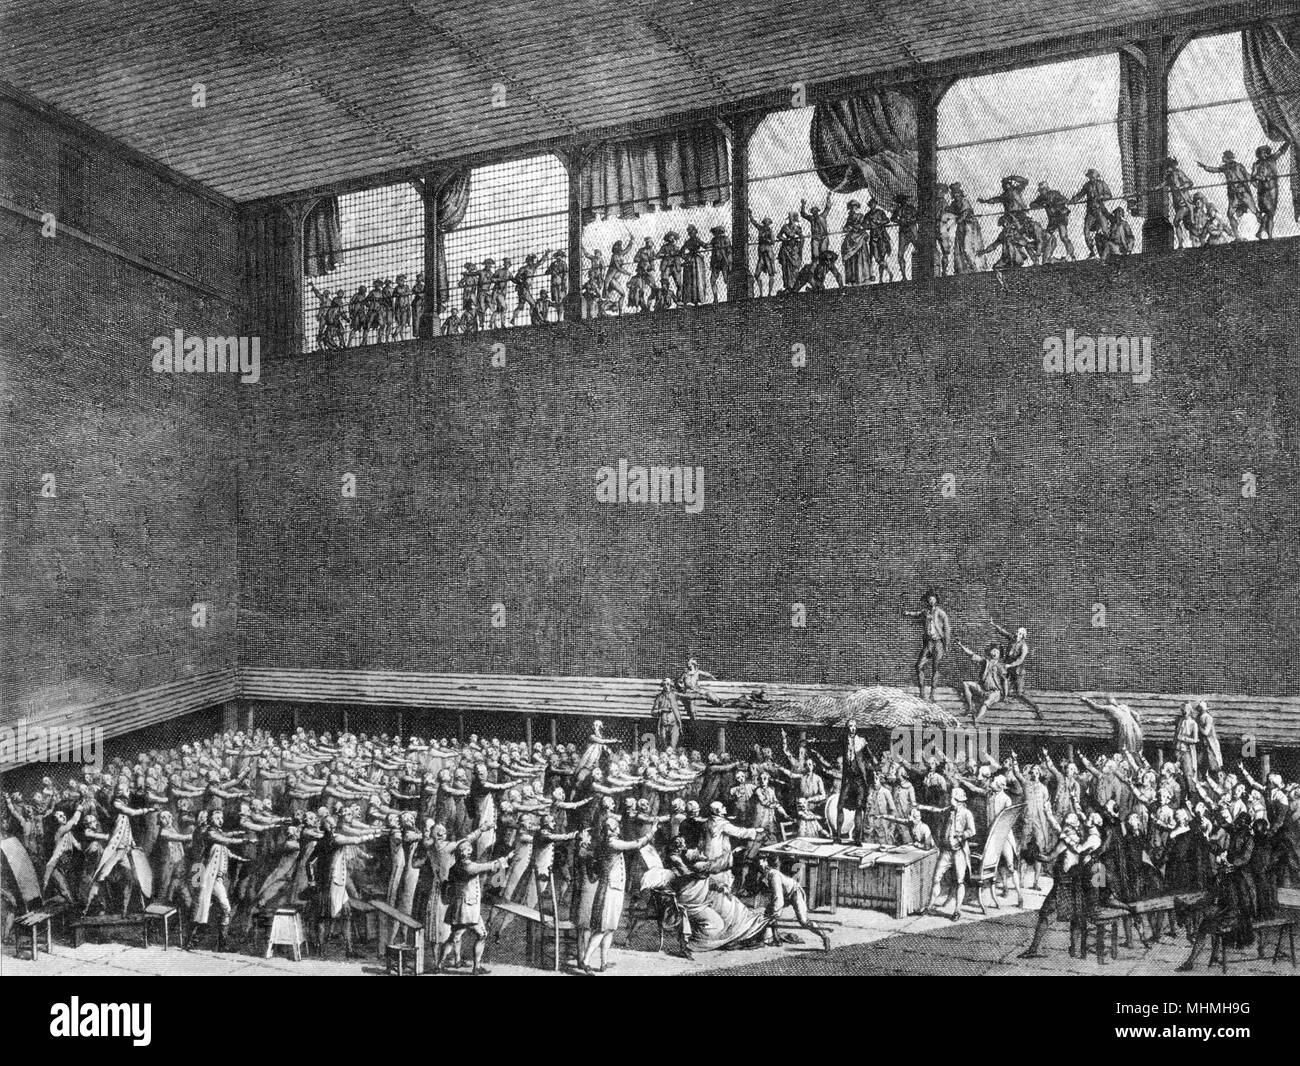 THE TENNIS COURT OATH Excluded from the Assemblee, the Third Estate gather in the Jeu de Paume at Versailles, and swear to act together to obtain a fair constitution     Date: 20 June 1789 - Stock Image